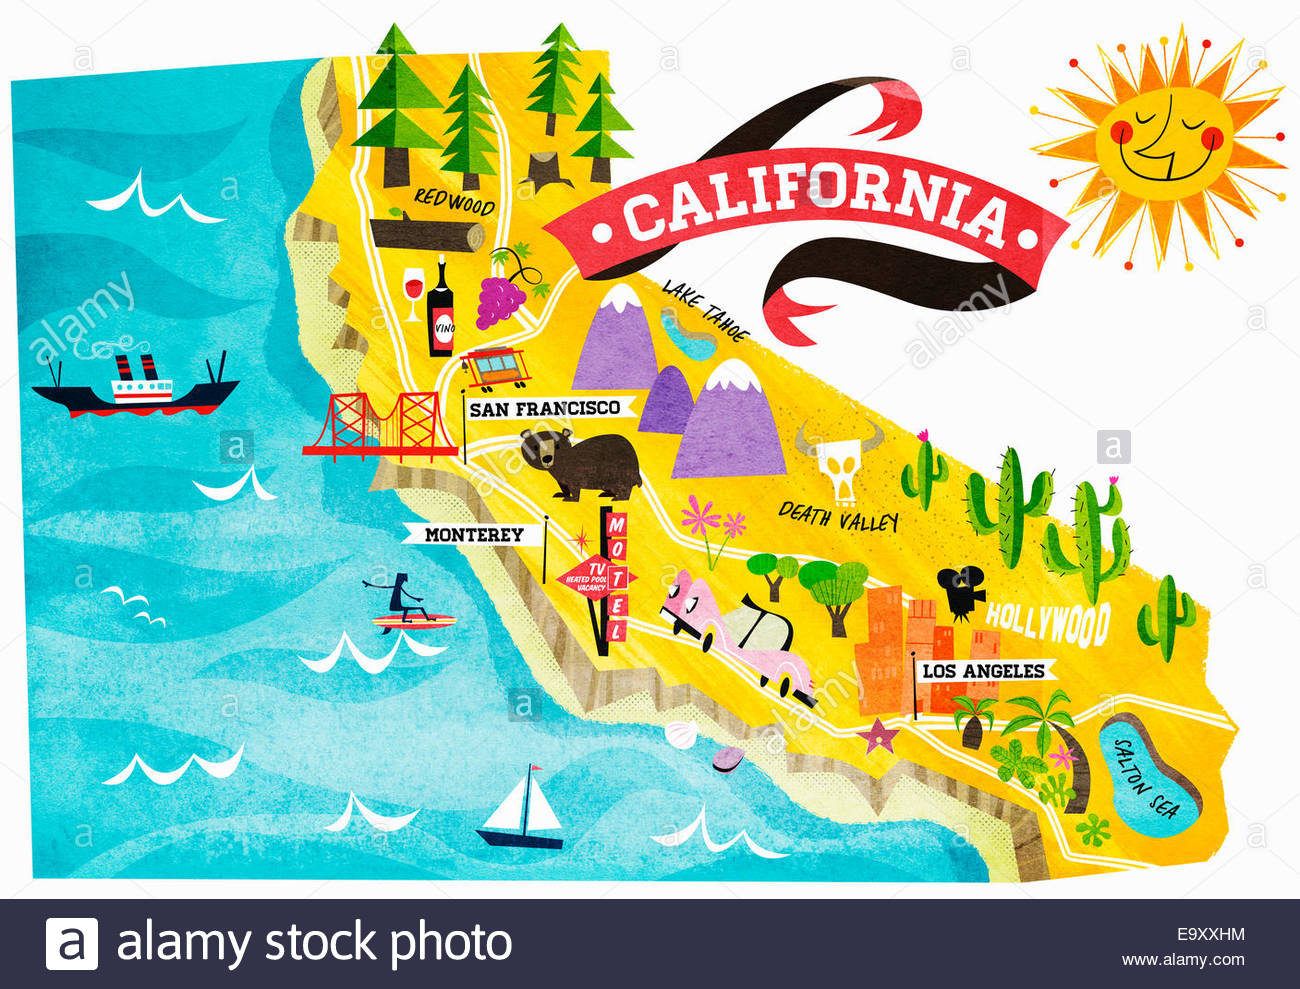 Map Of Tourist Attractions In California Exxhm Google Maps - California Attractions Map